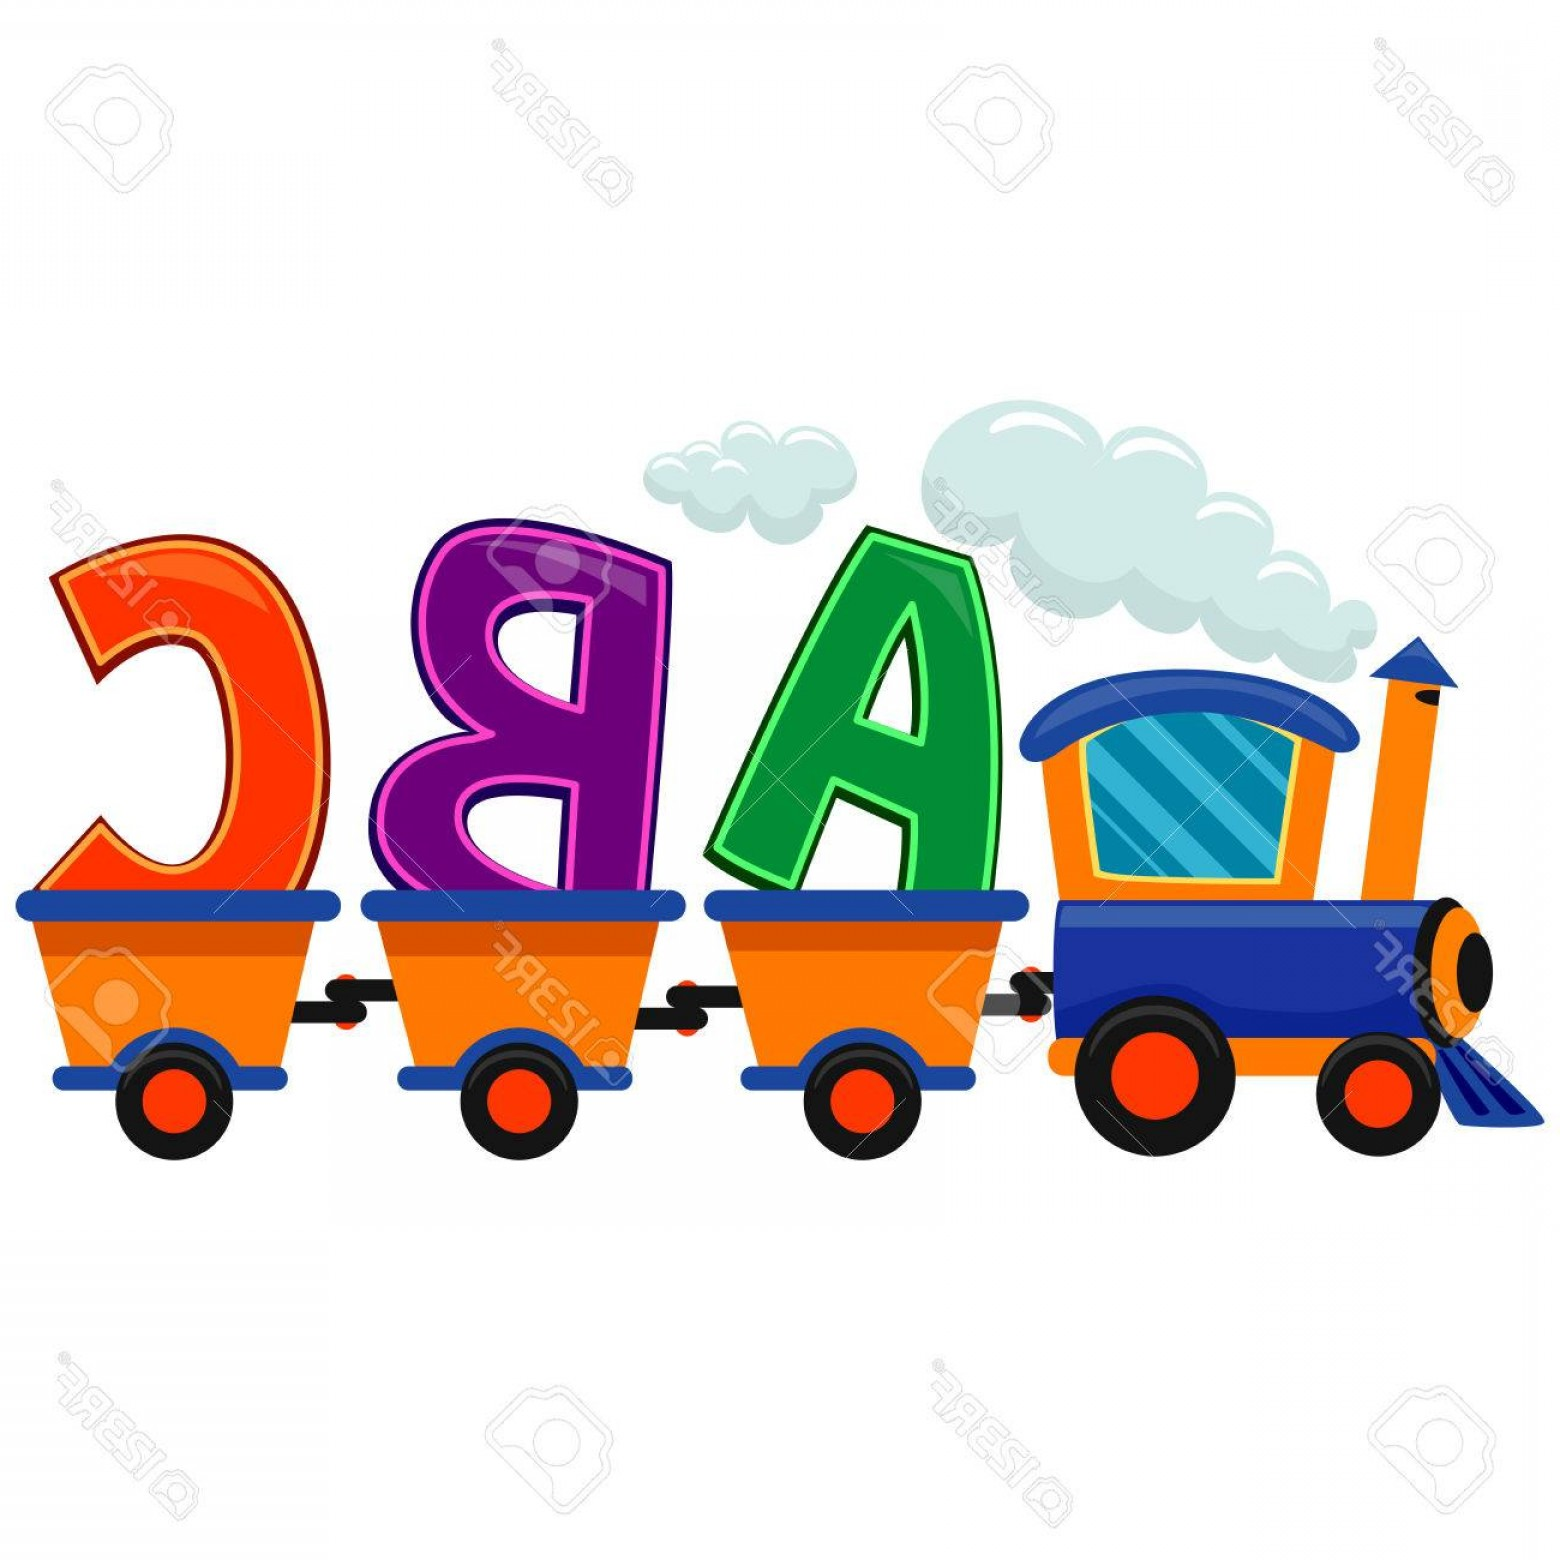 ABC Vectors: Photostock Vector Colorful Vector Illustration Of Train With Abc